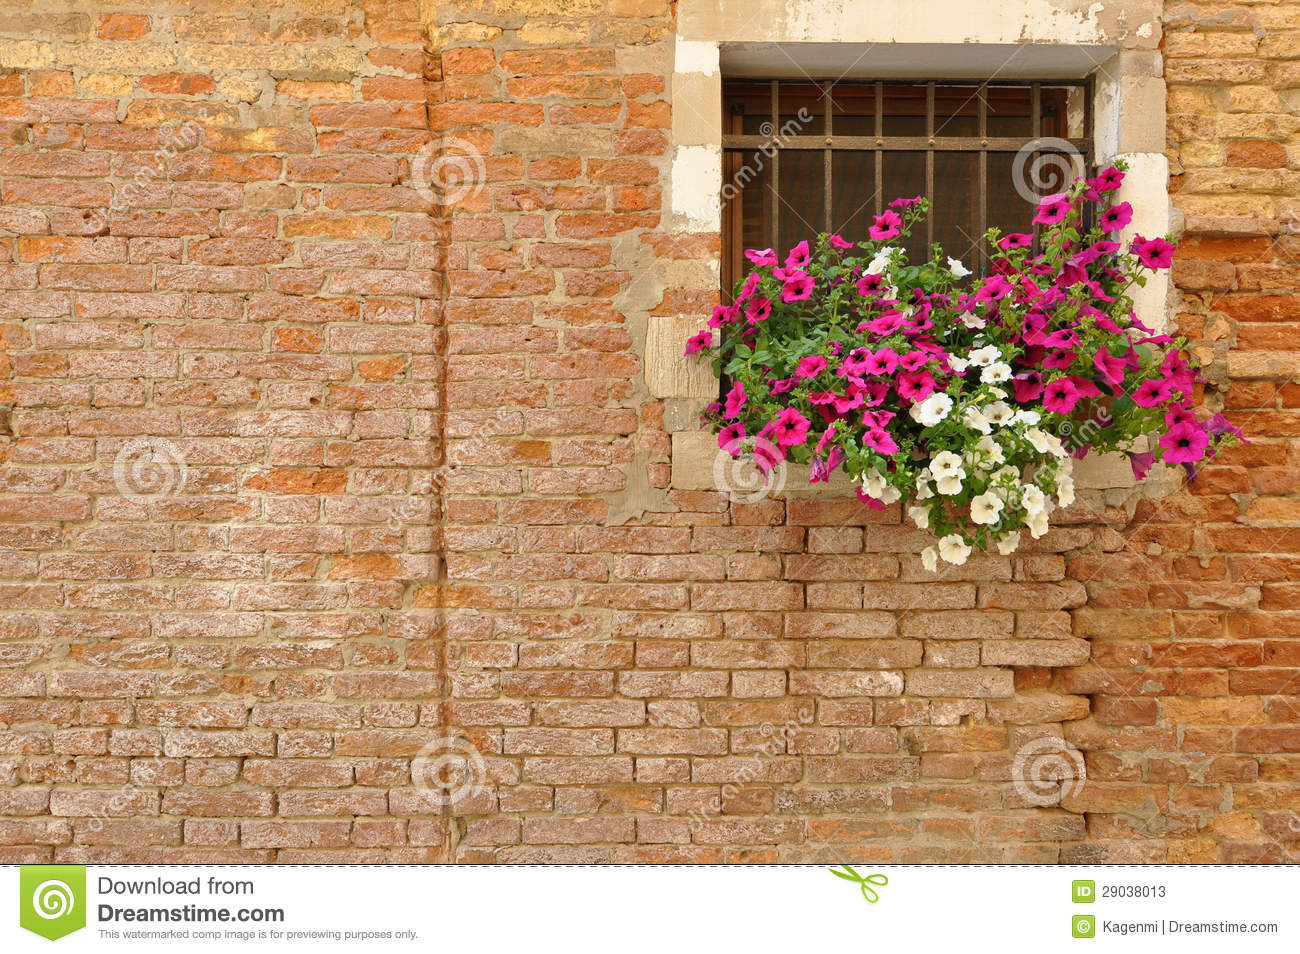 Pink and white petunia flowers on the windowsill of a brick Italian home